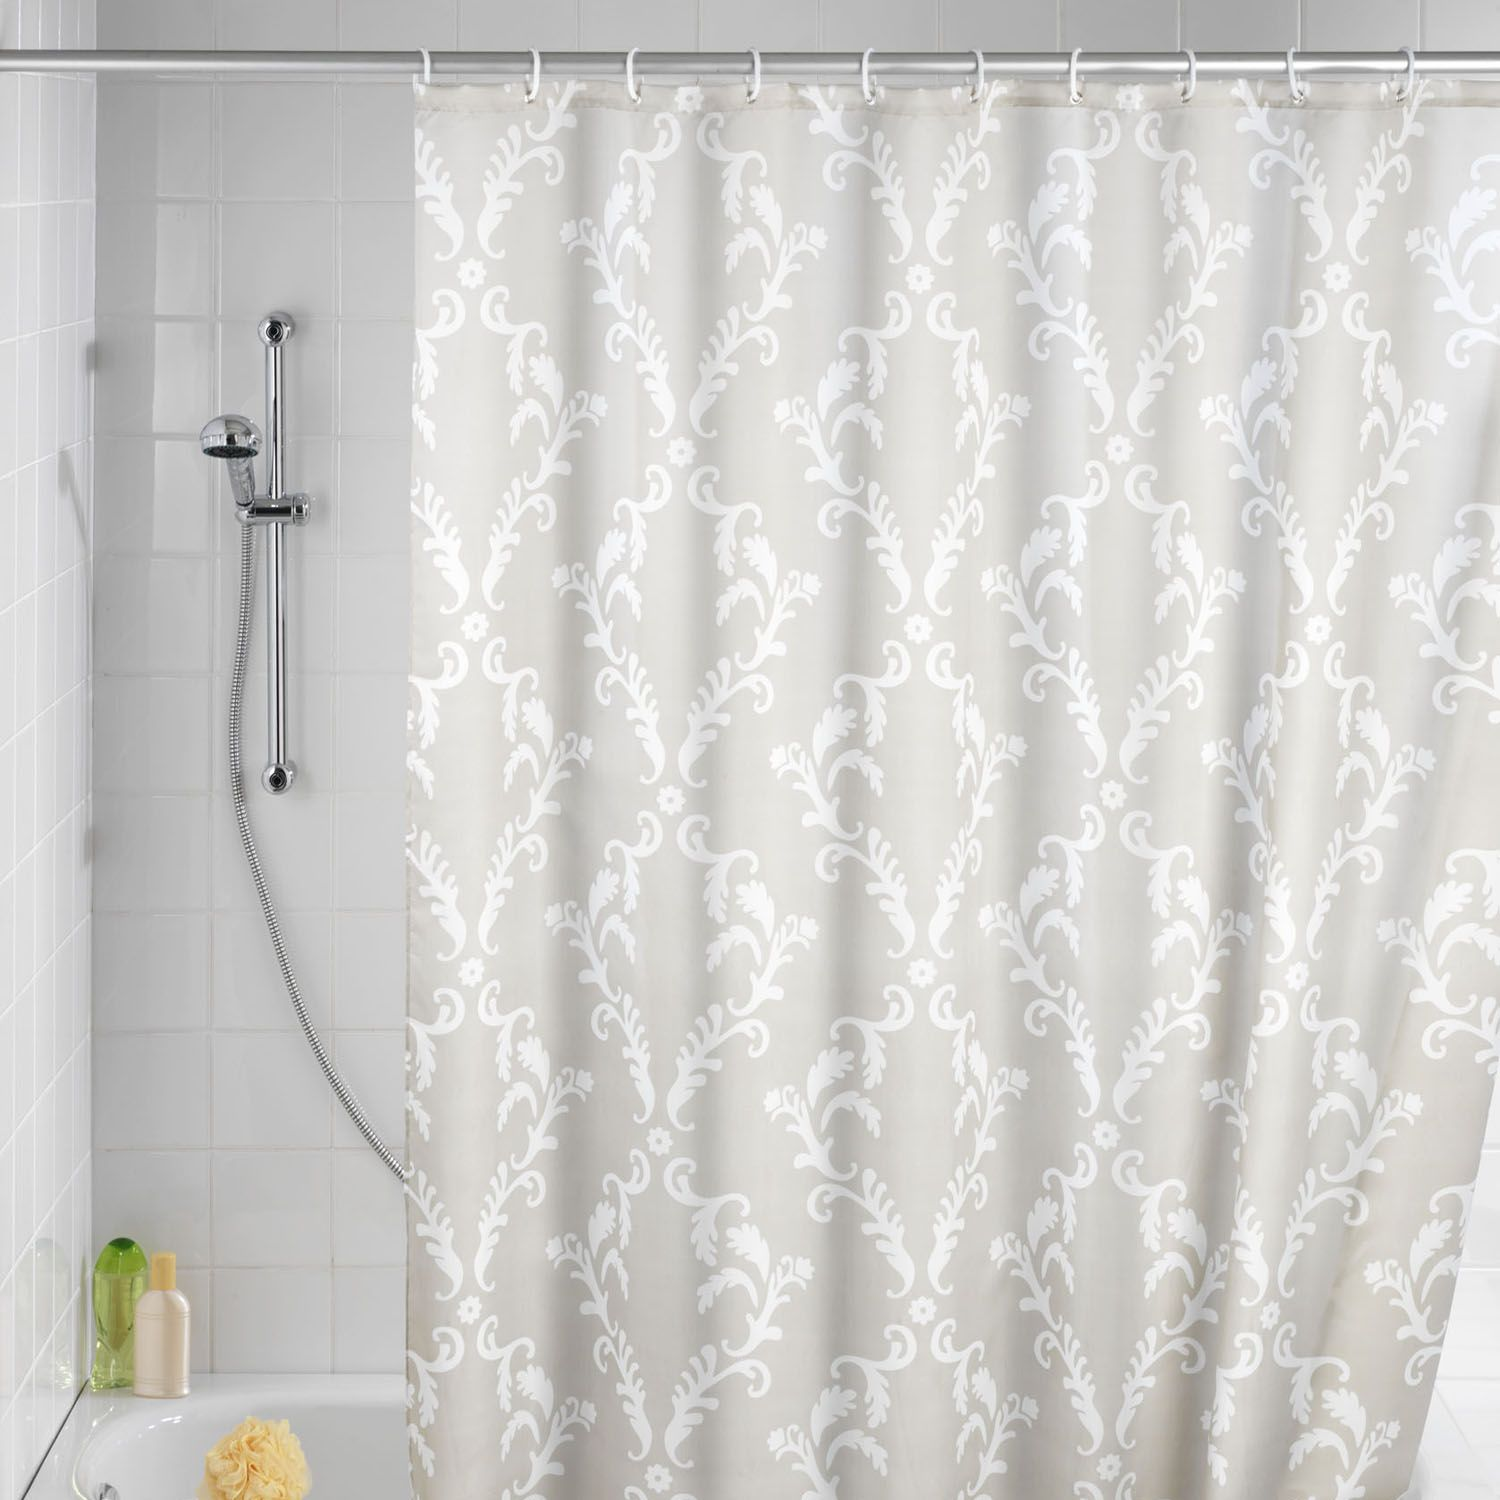 choosing the best shower curtain, check it out! | curtain ideas